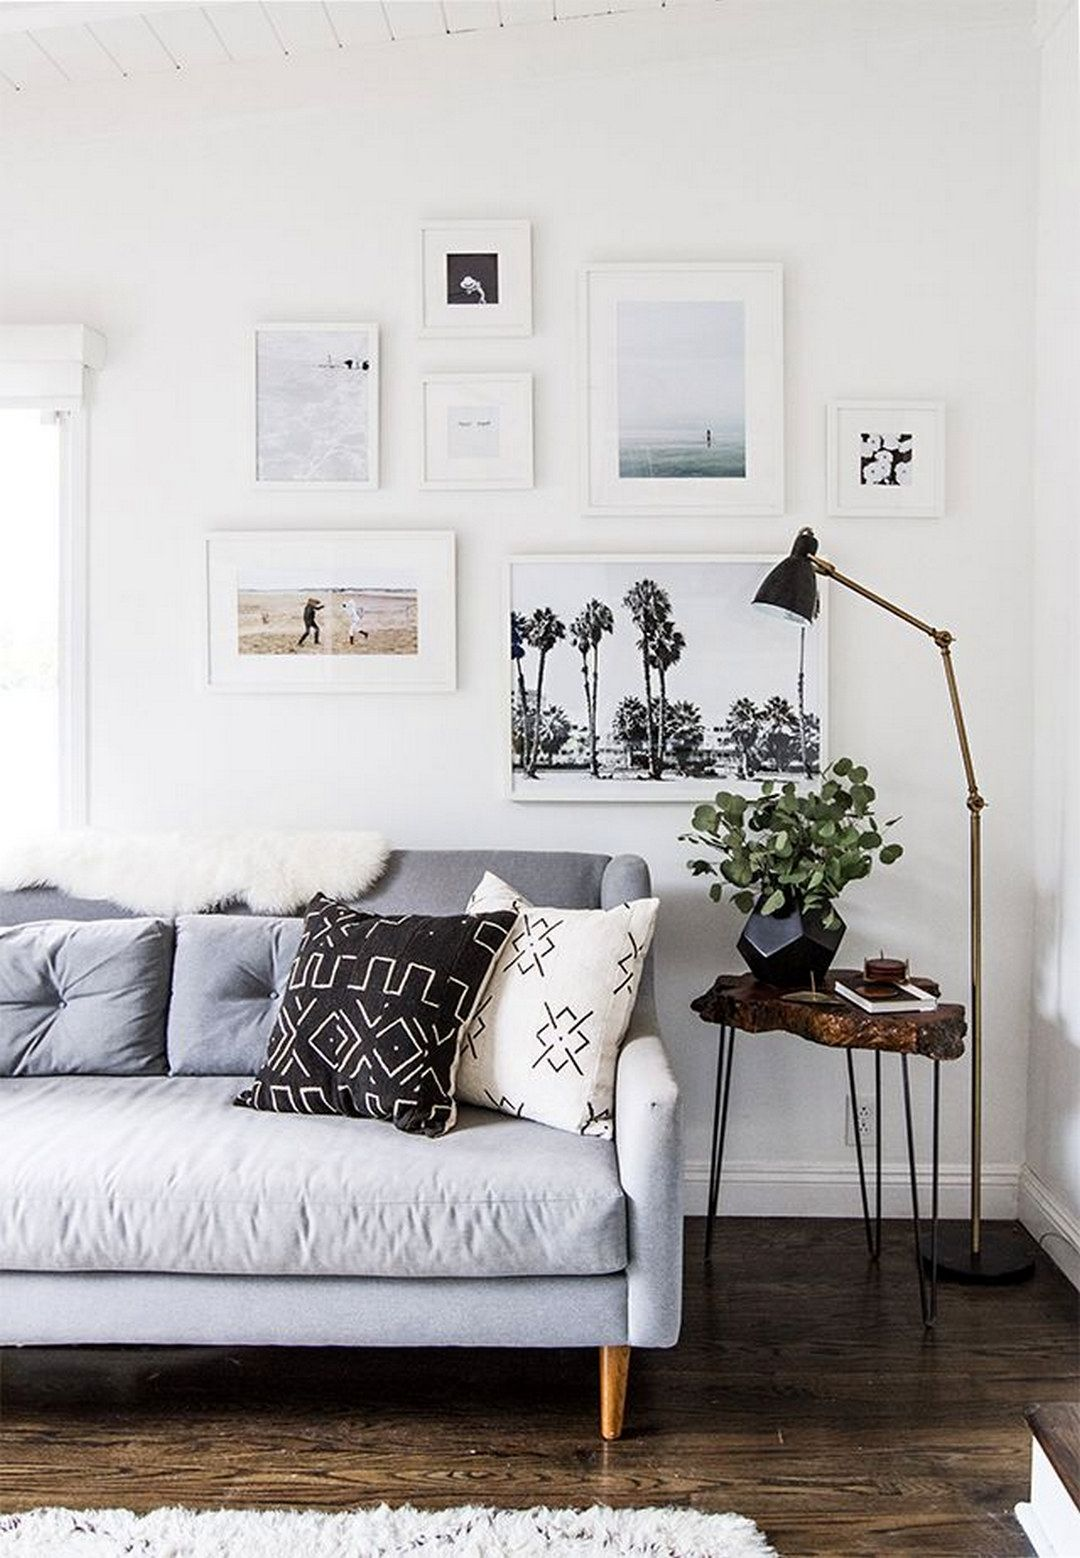 White Wall Decorations Living Room Ideas On Pinterest 9 Minimalist Decoration Tips H O M E 64 Wonderful Decor Https Www Futuristarchitecture Com